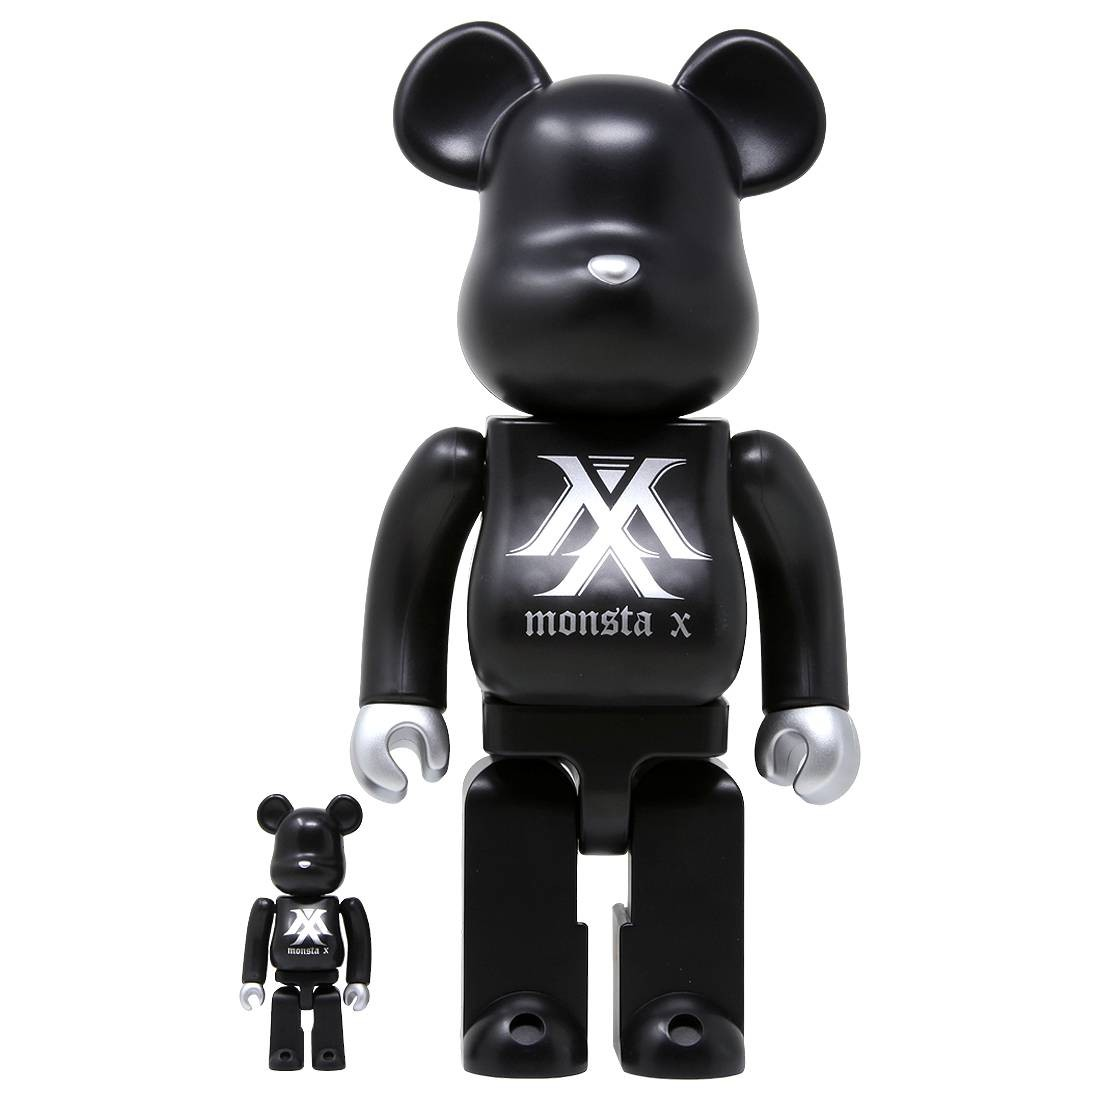 Medicom Monsta X 100% 400% Bearbrick Figure Set (black)